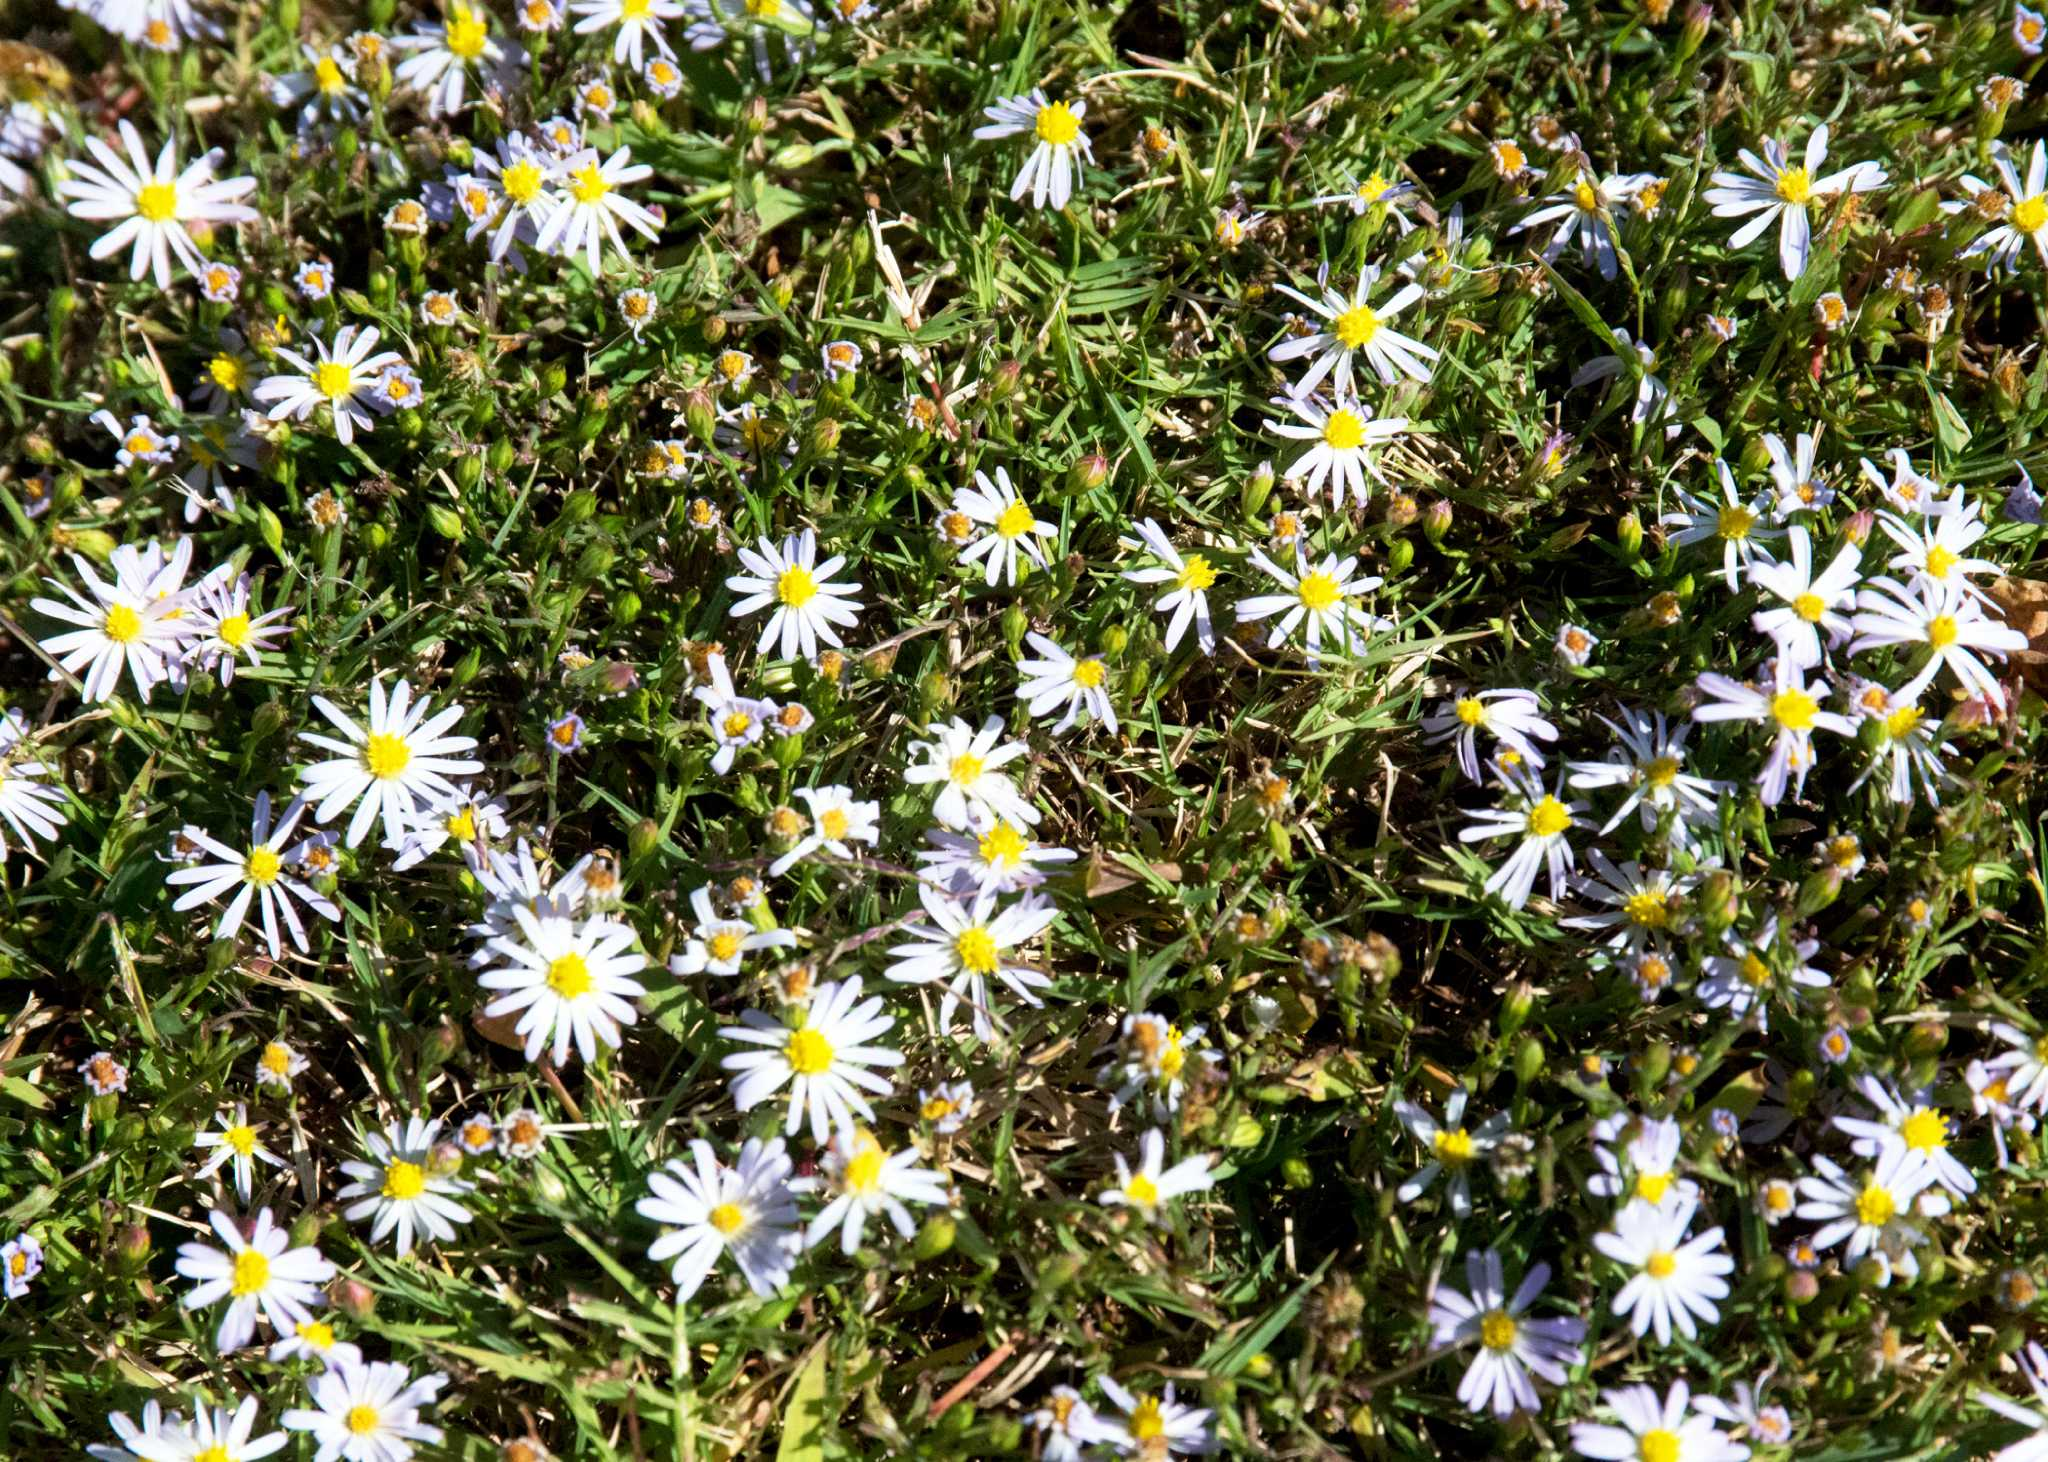 Neil Sperry Roadside Aster Pops Up In Lawns San Antonio Express News